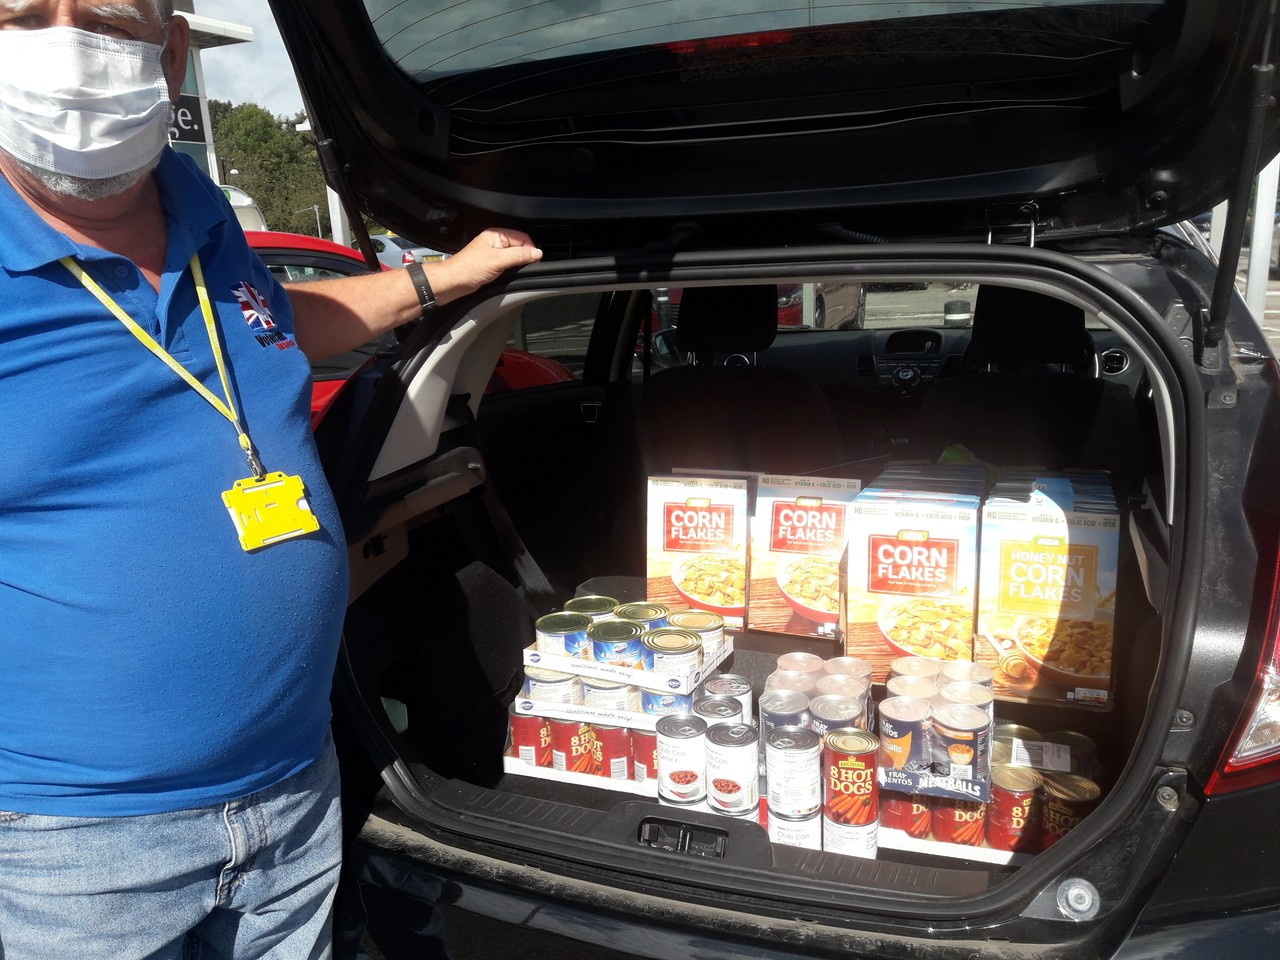 Donation to food bank | Asda South Shields